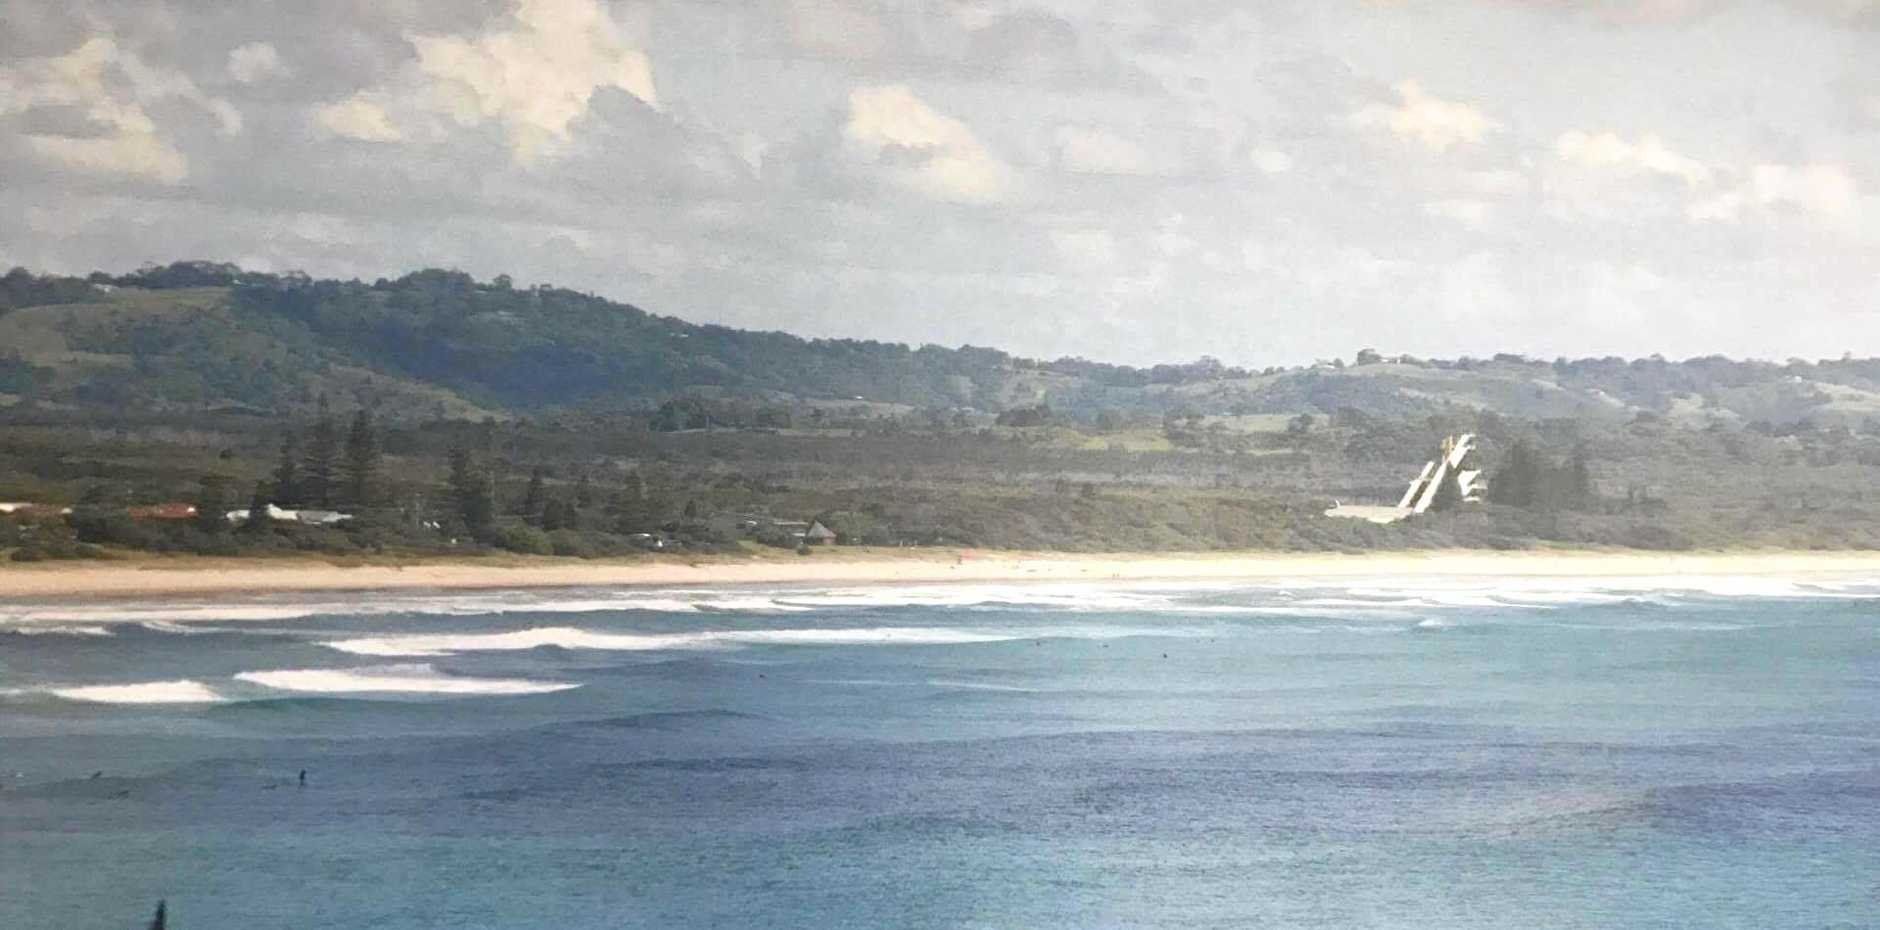 An artist impression of the Ski jump facility at Lennox Head. The size of the structure has upset locals, but it may not be as big as it appears in the artist impression.